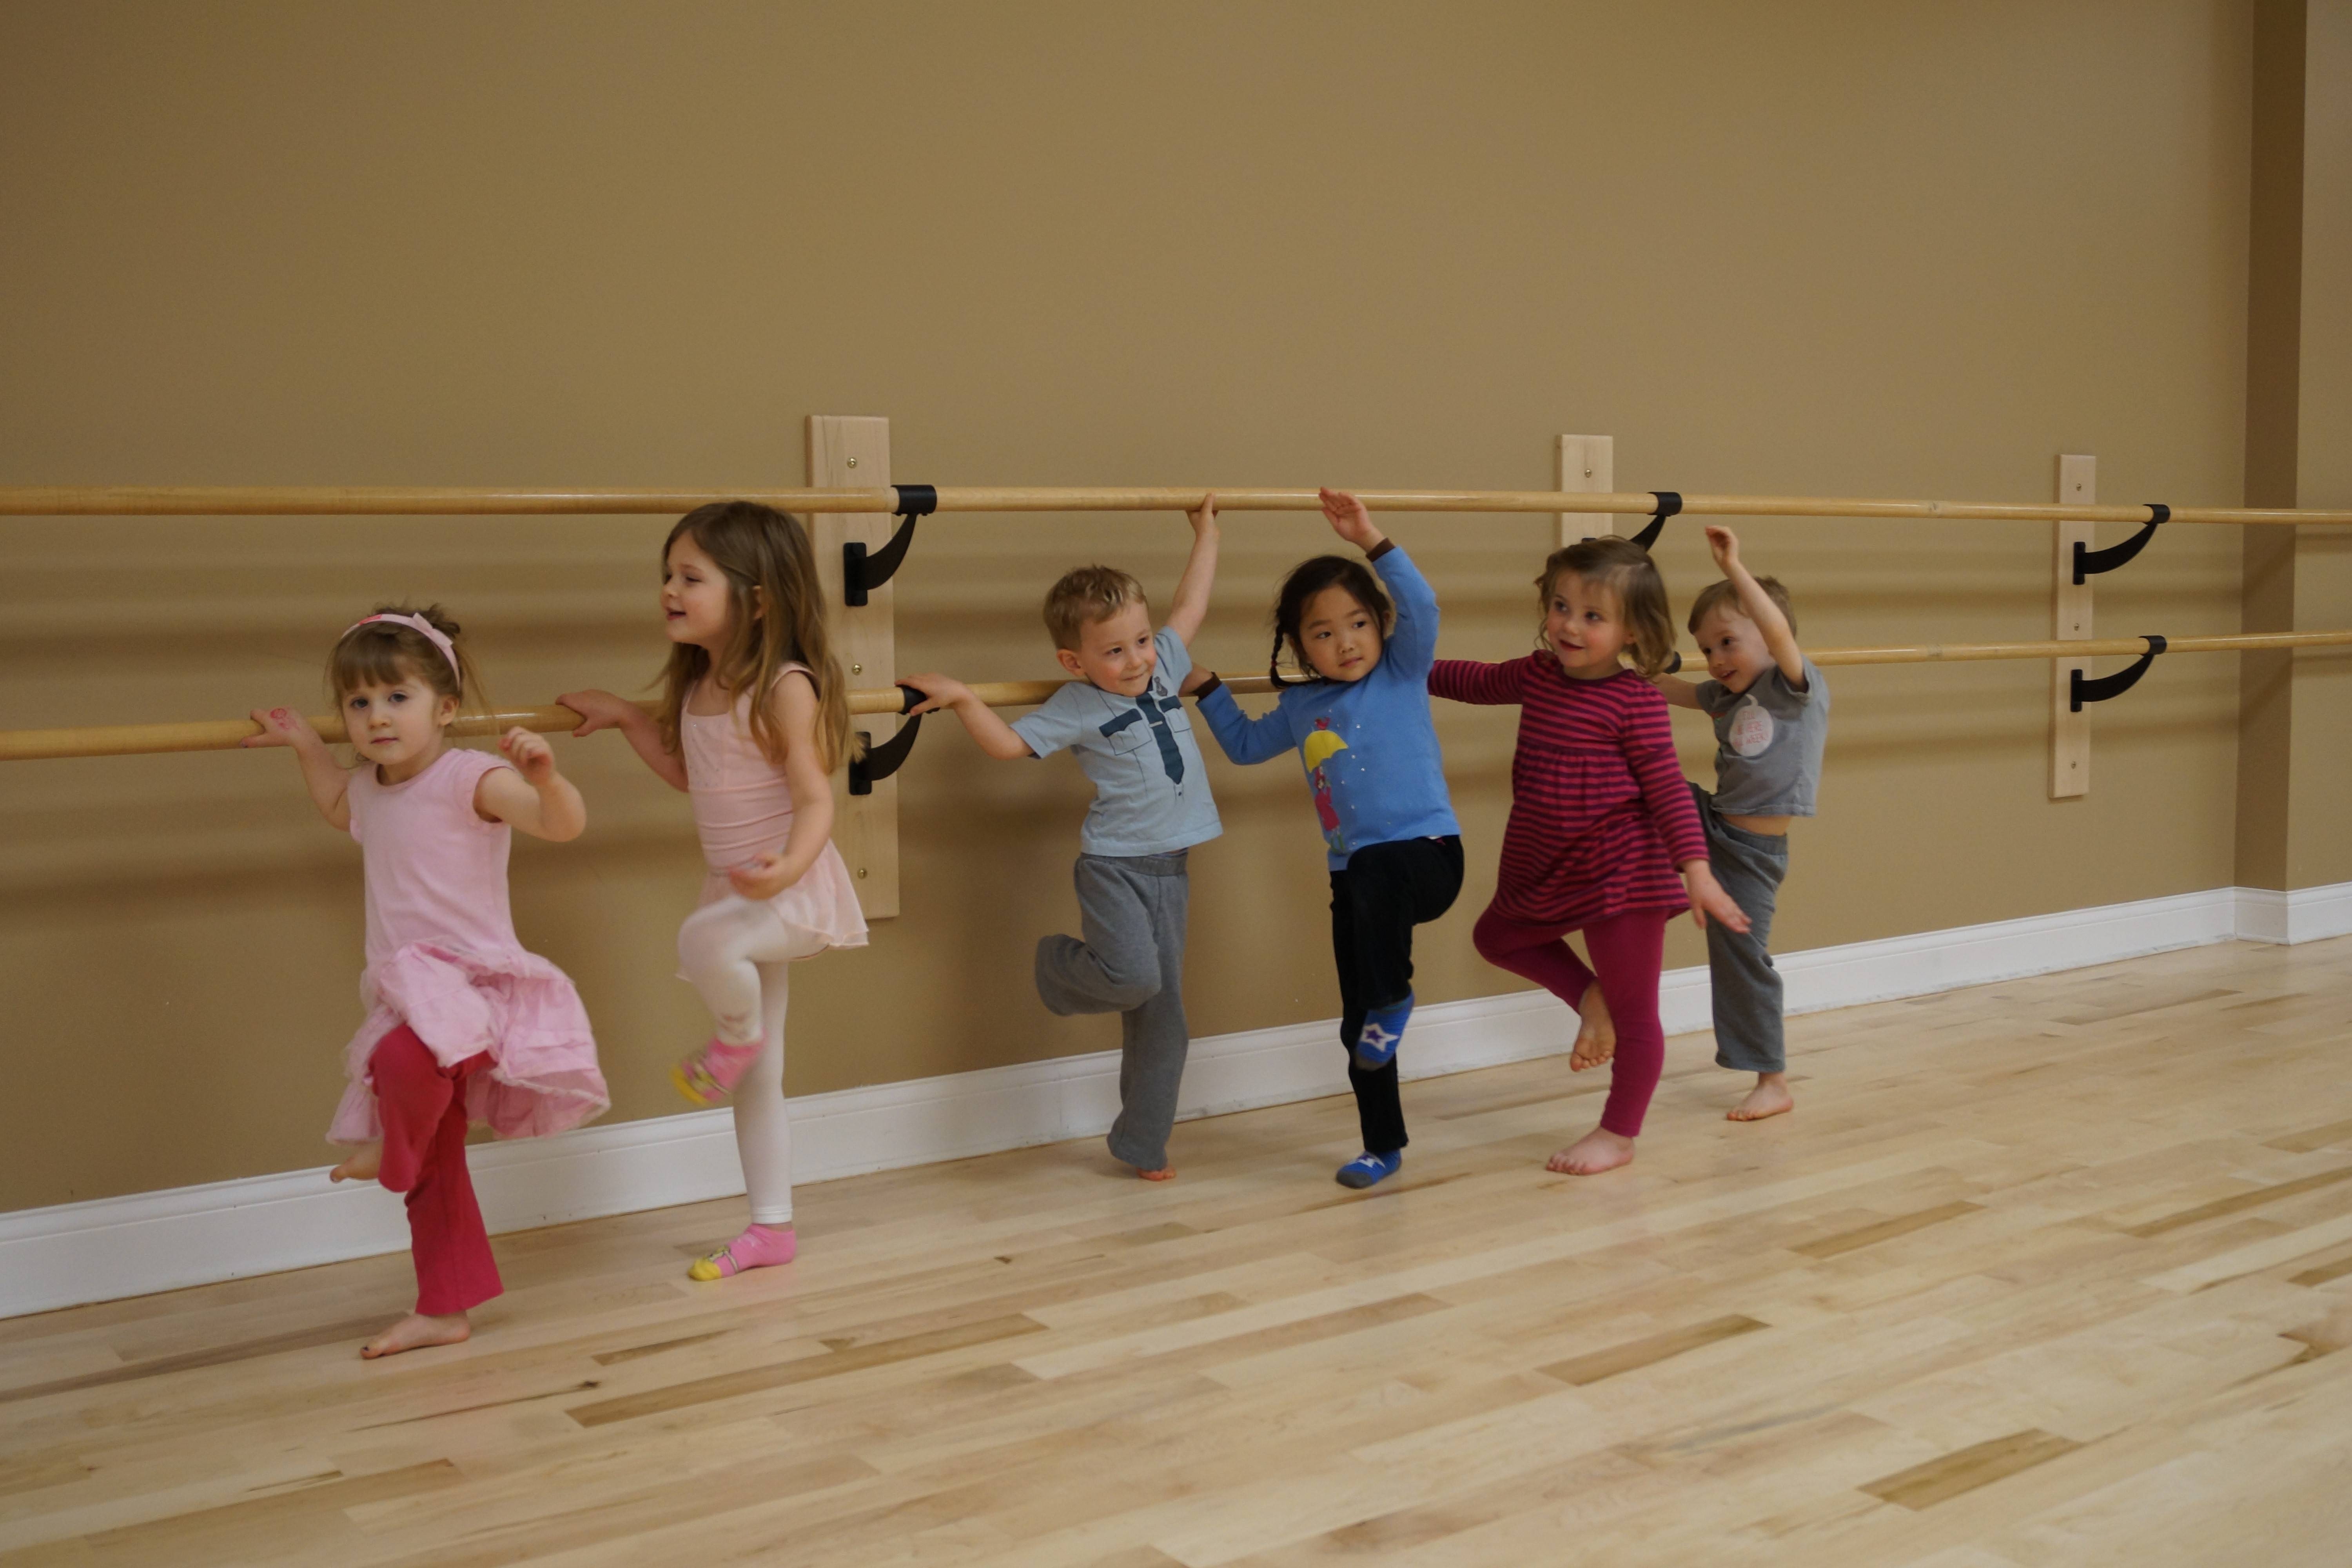 With a new wood studio floor at the Alfred Rubin Riverwalk Community Center, Naperville Park District plans to offer new dance classes, including more options for younger dancers and for boys.